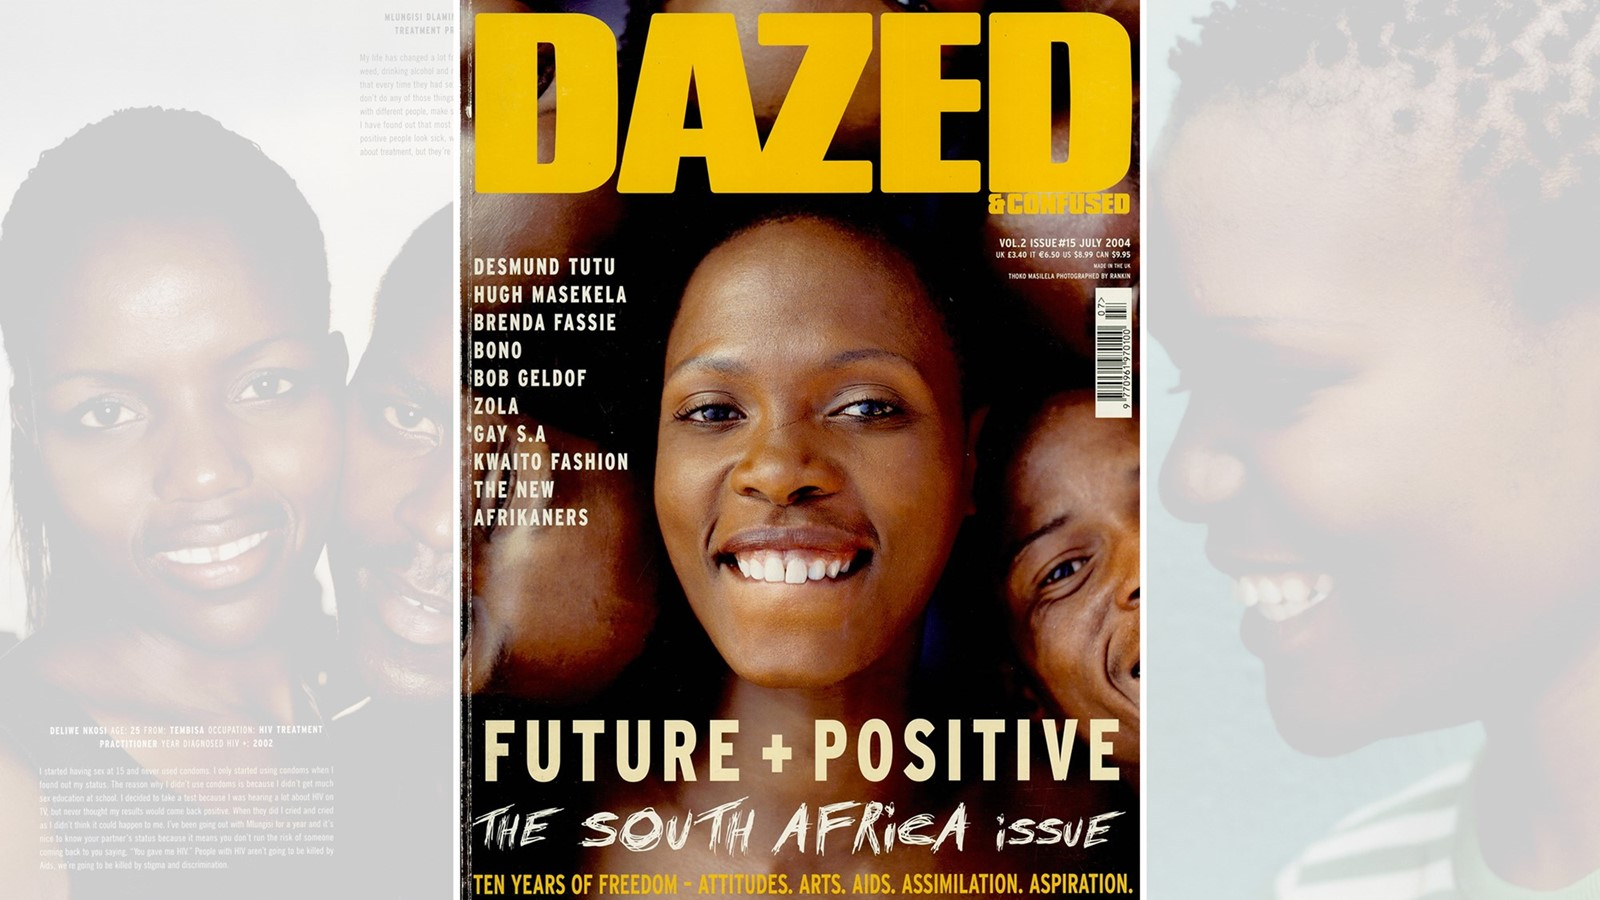 July 2004, The South Africa Issue